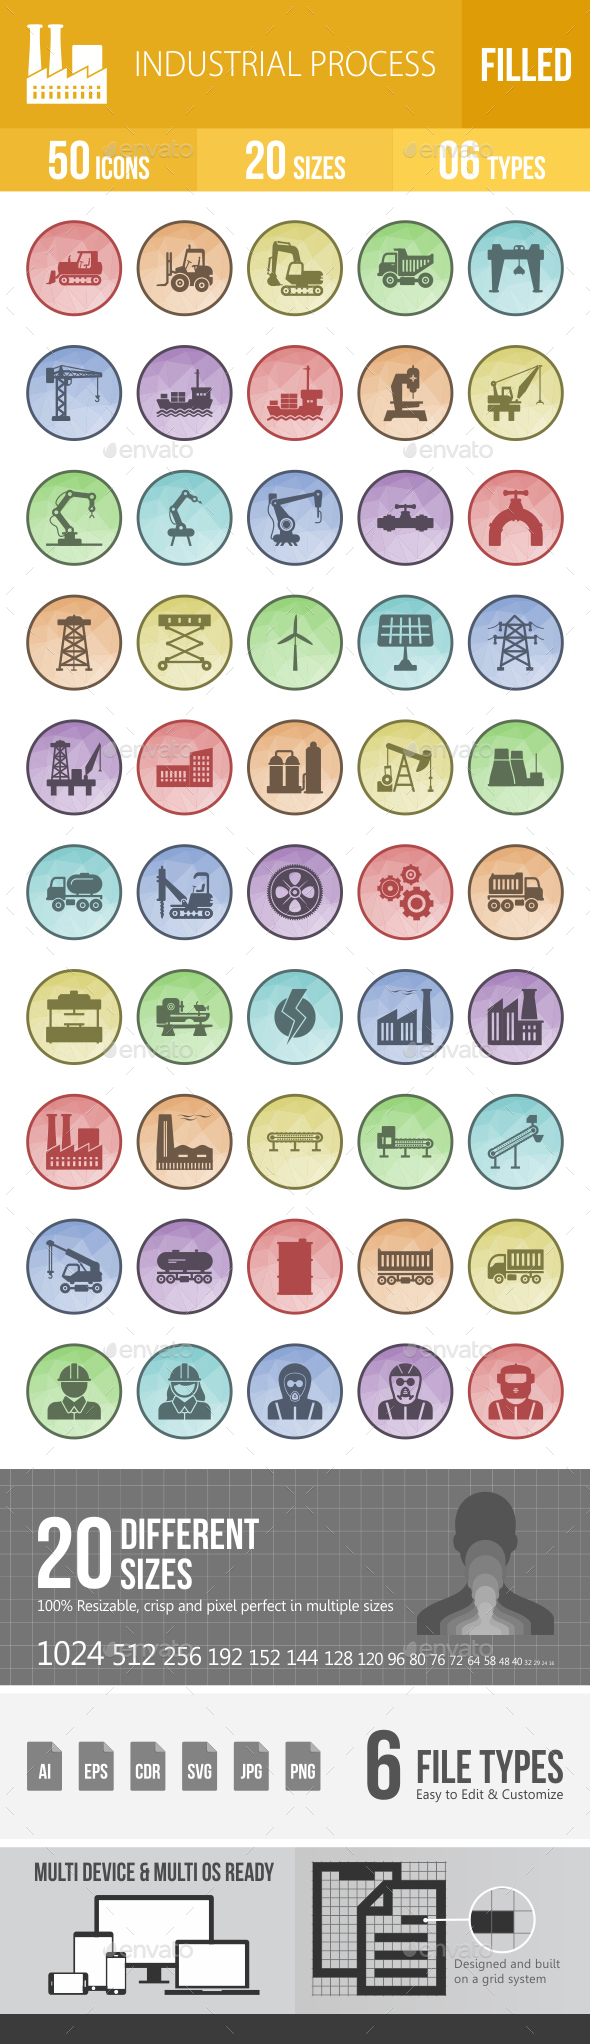 50 Industrial Process Filled Low Poly Icons - Icons